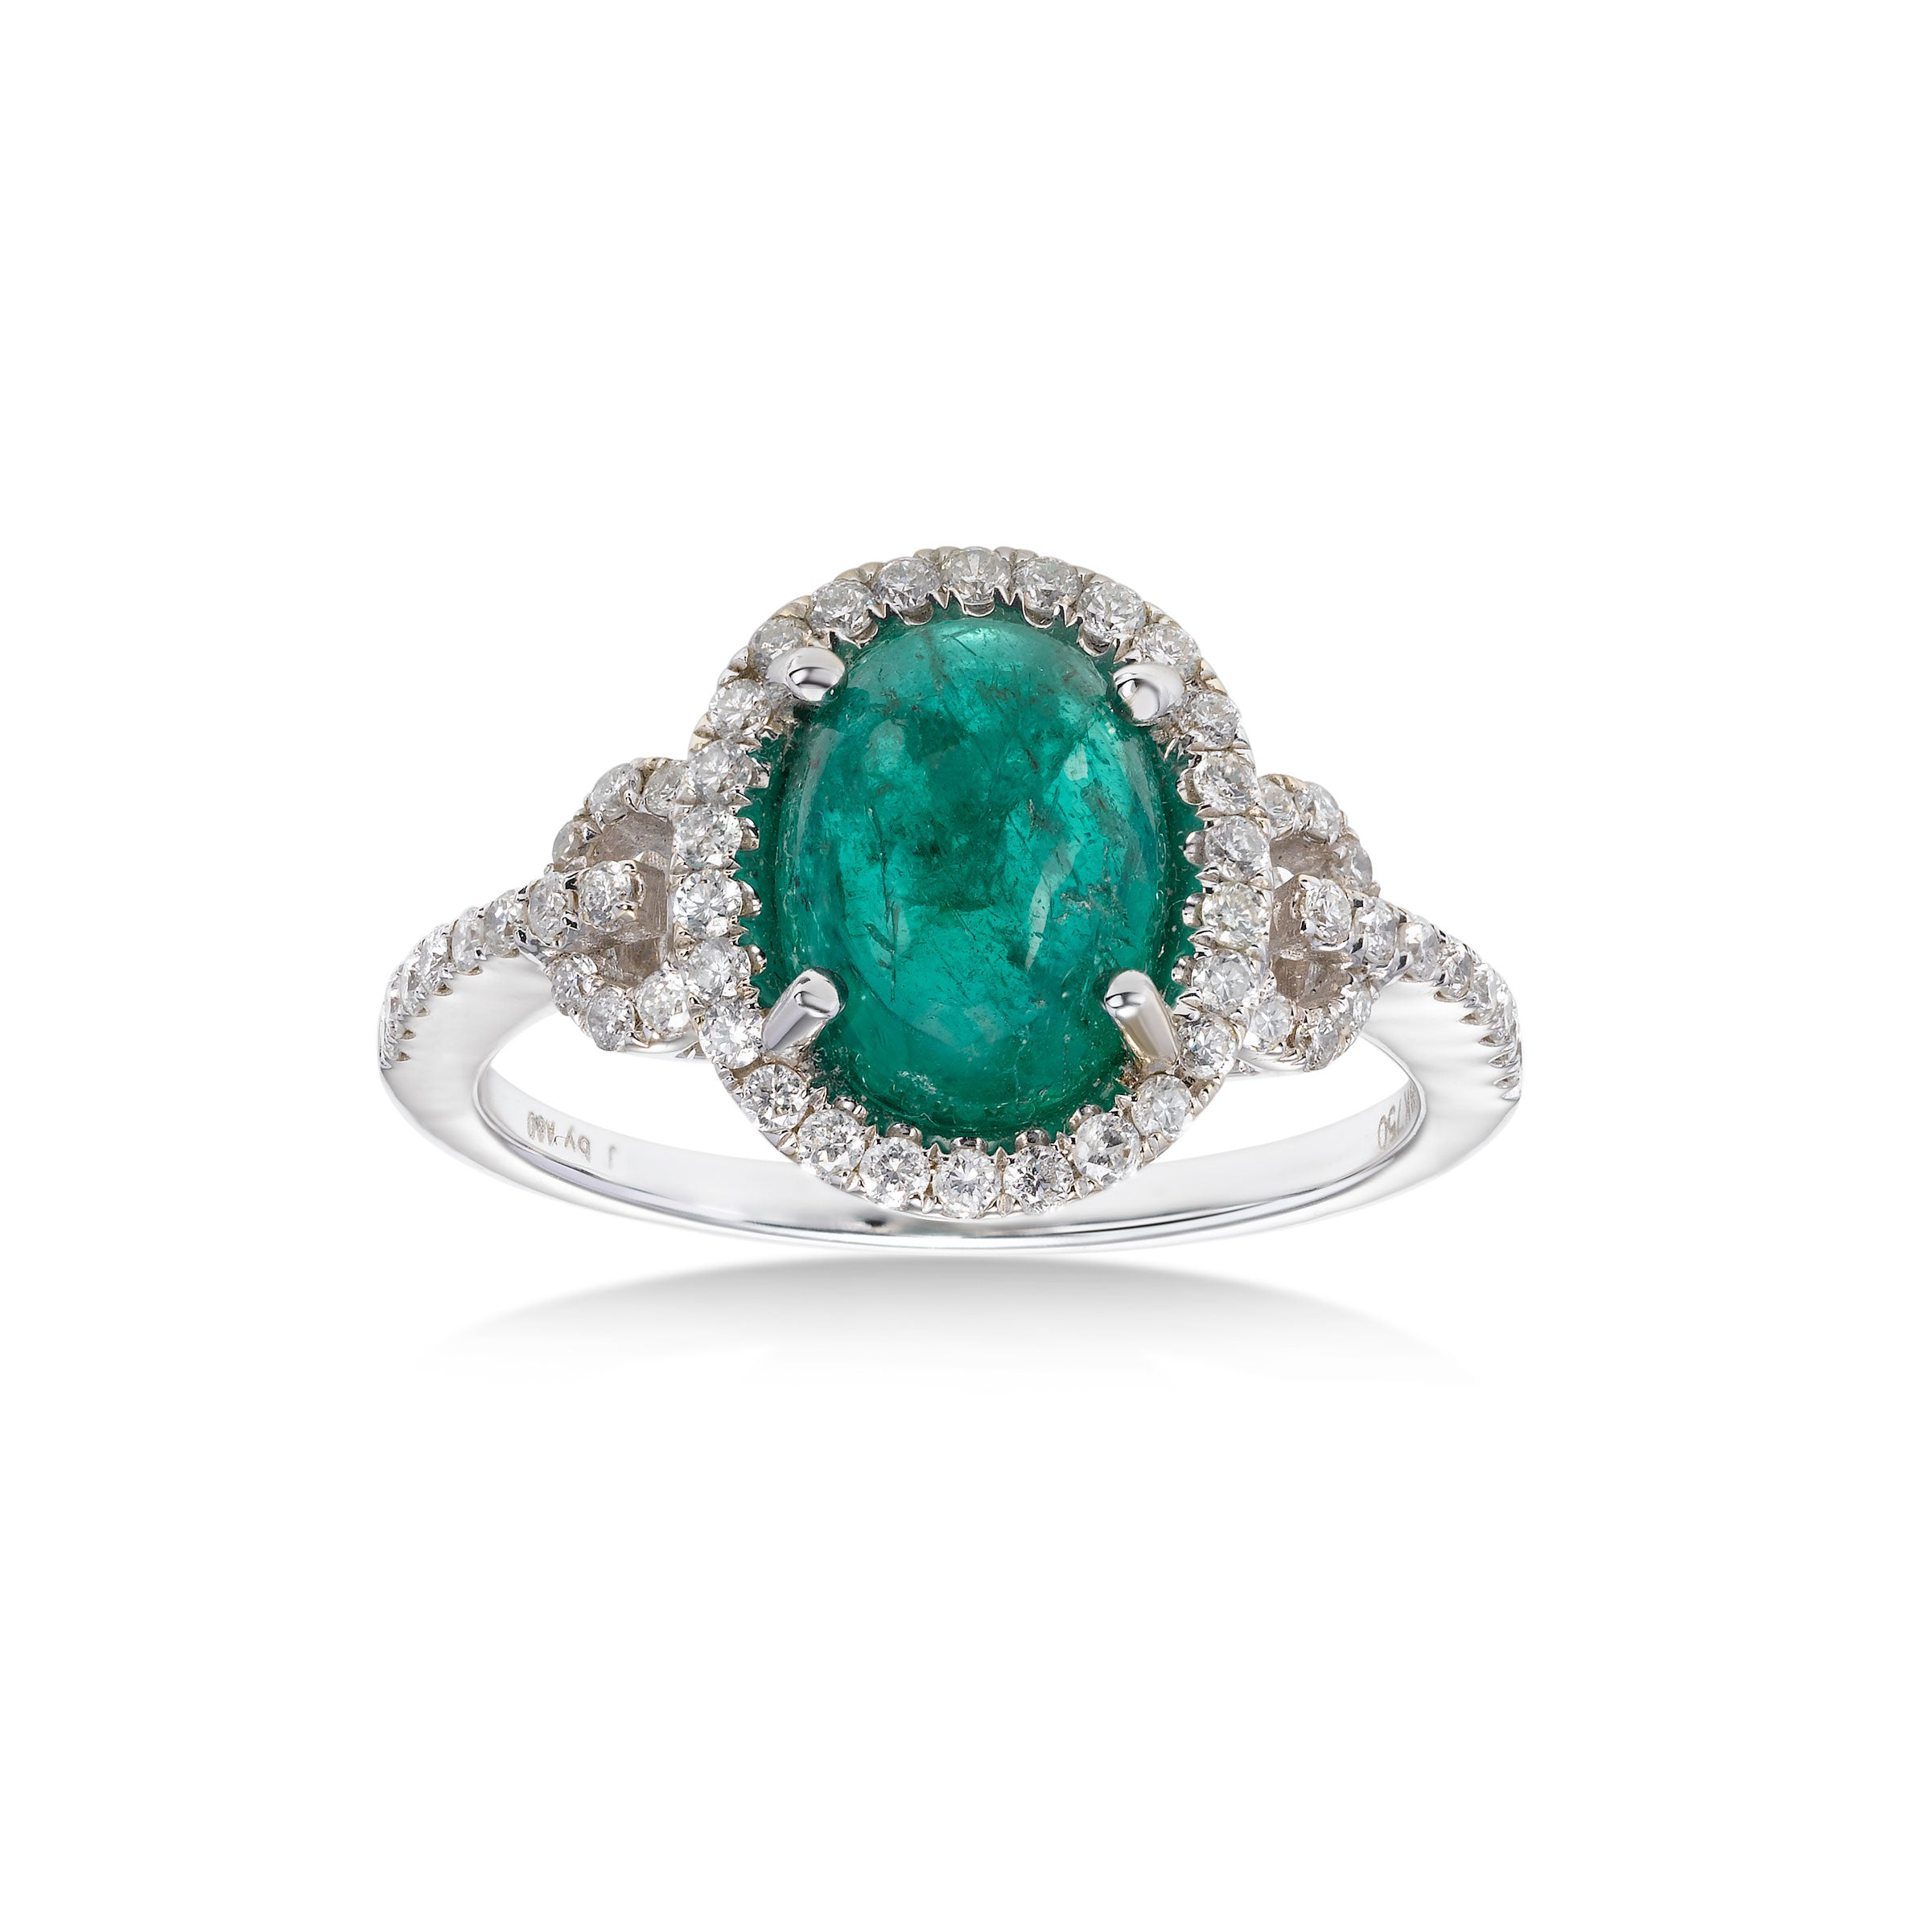 Cabochon Emerald and Diamond Ring, 18K White Gold